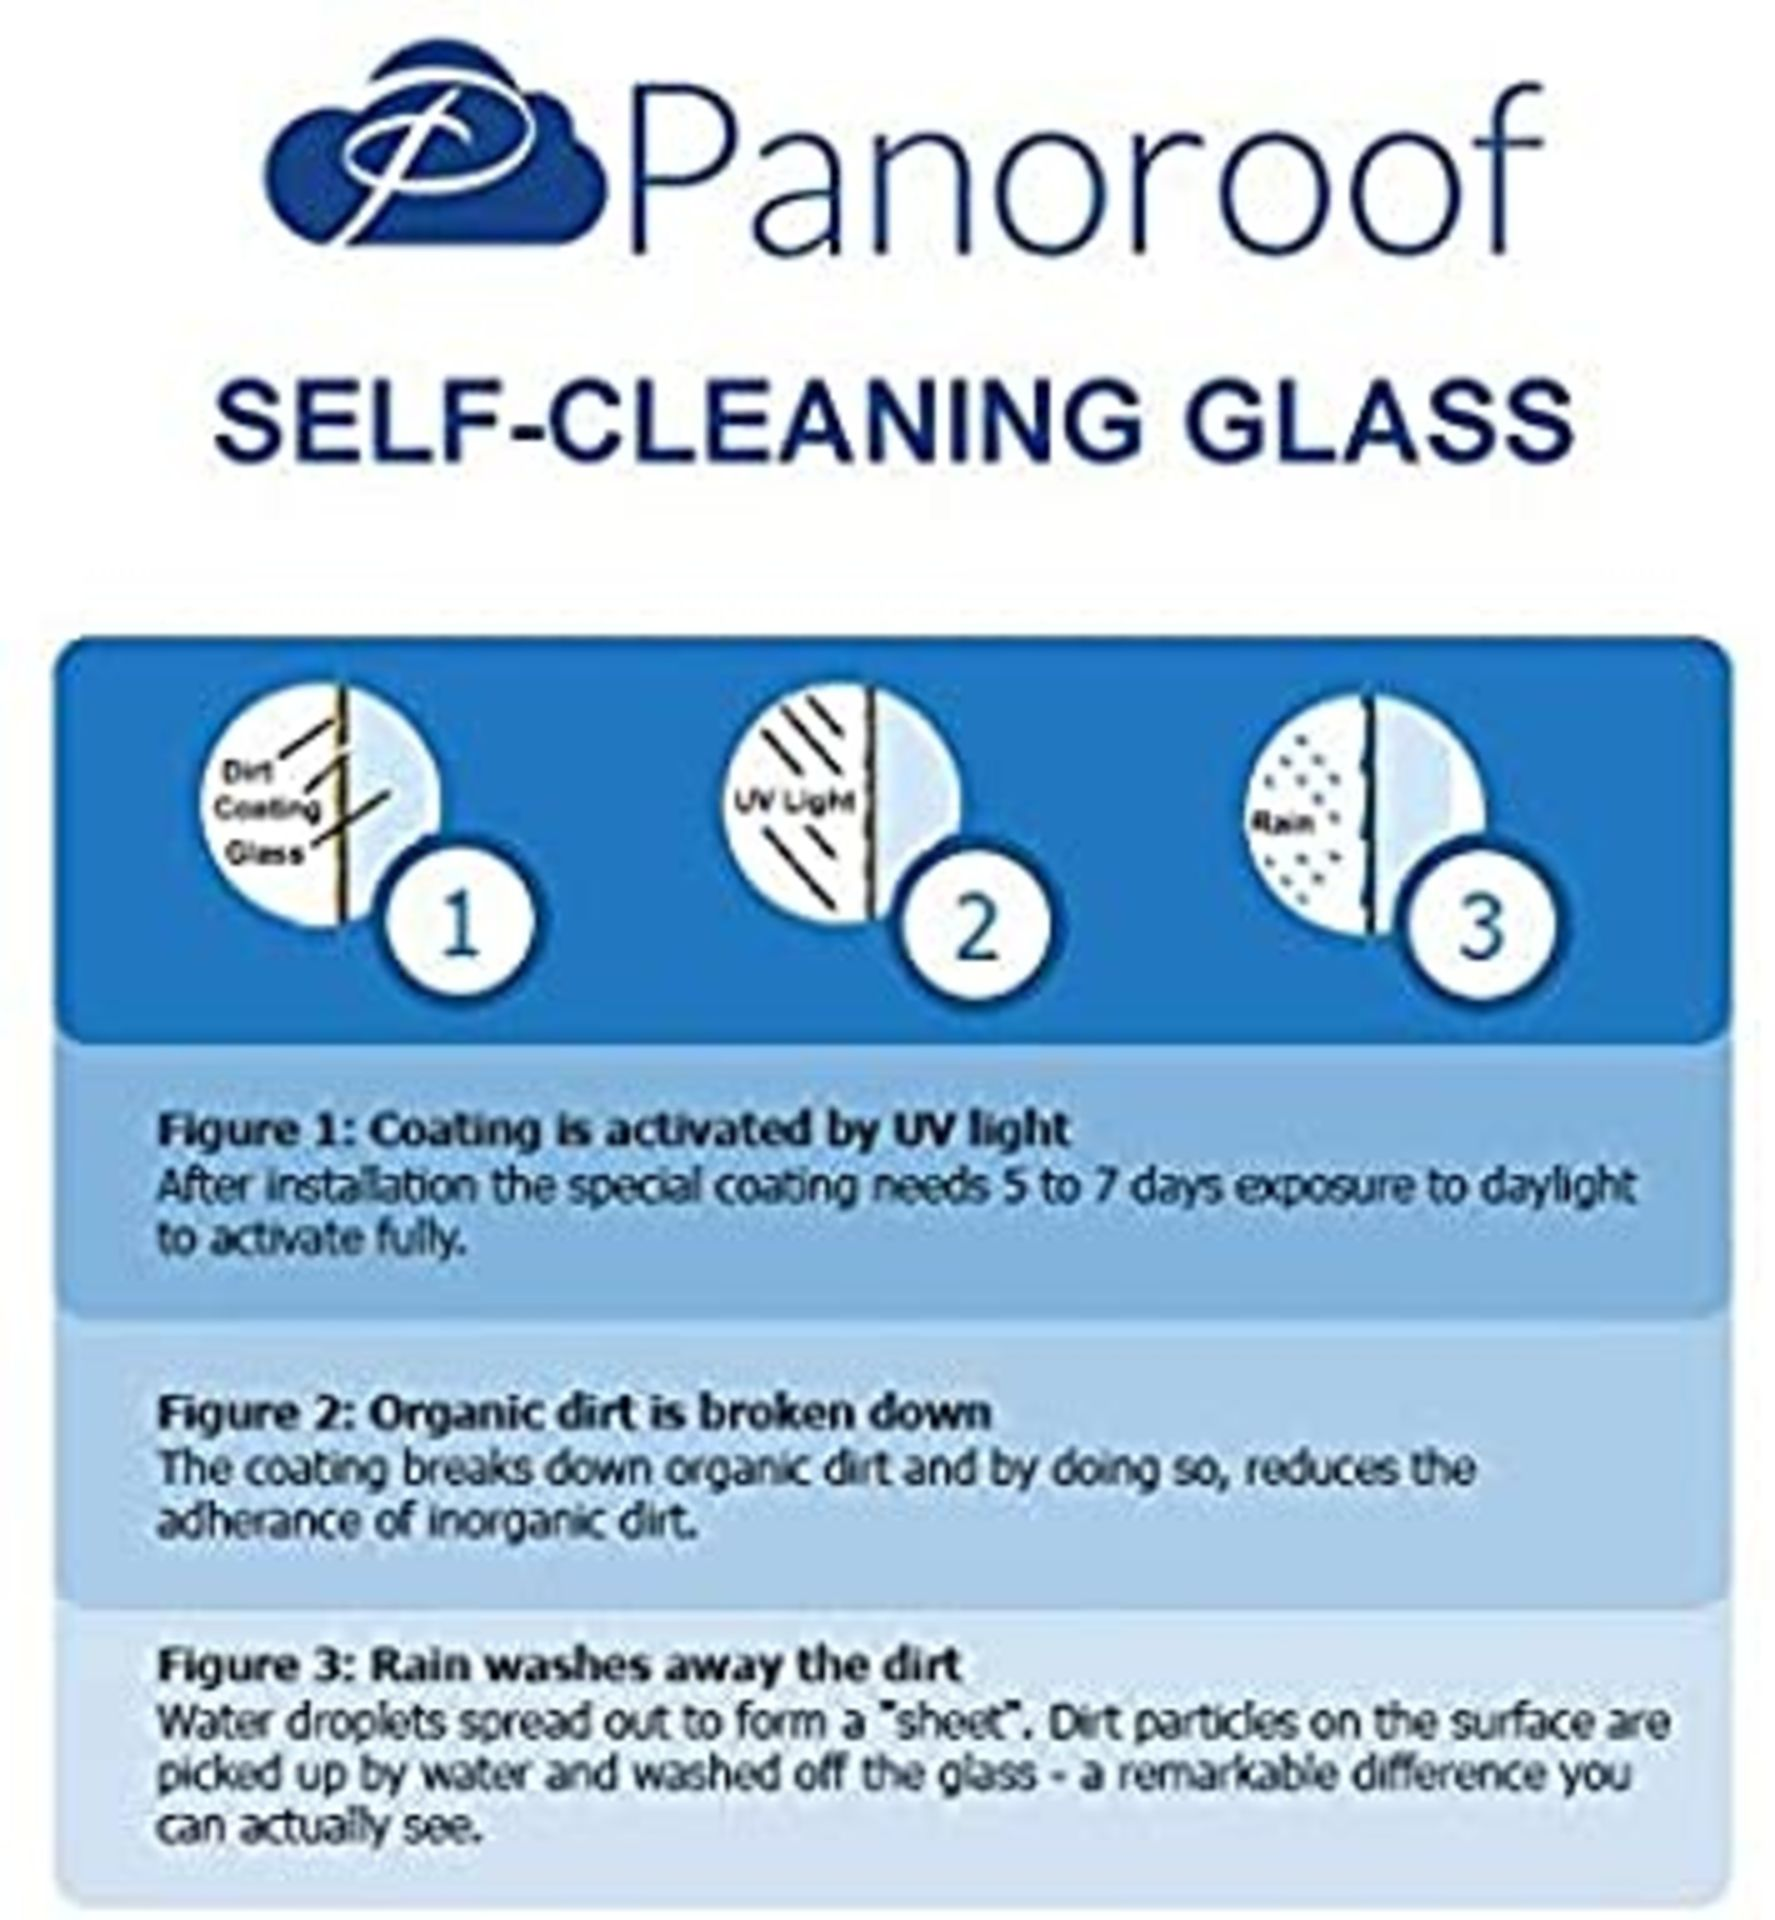 Panoroof 600x3500mm (inside Size Visable glass area) Seamless Glass Skylight Flat Roof Rooflight U - Image 6 of 6